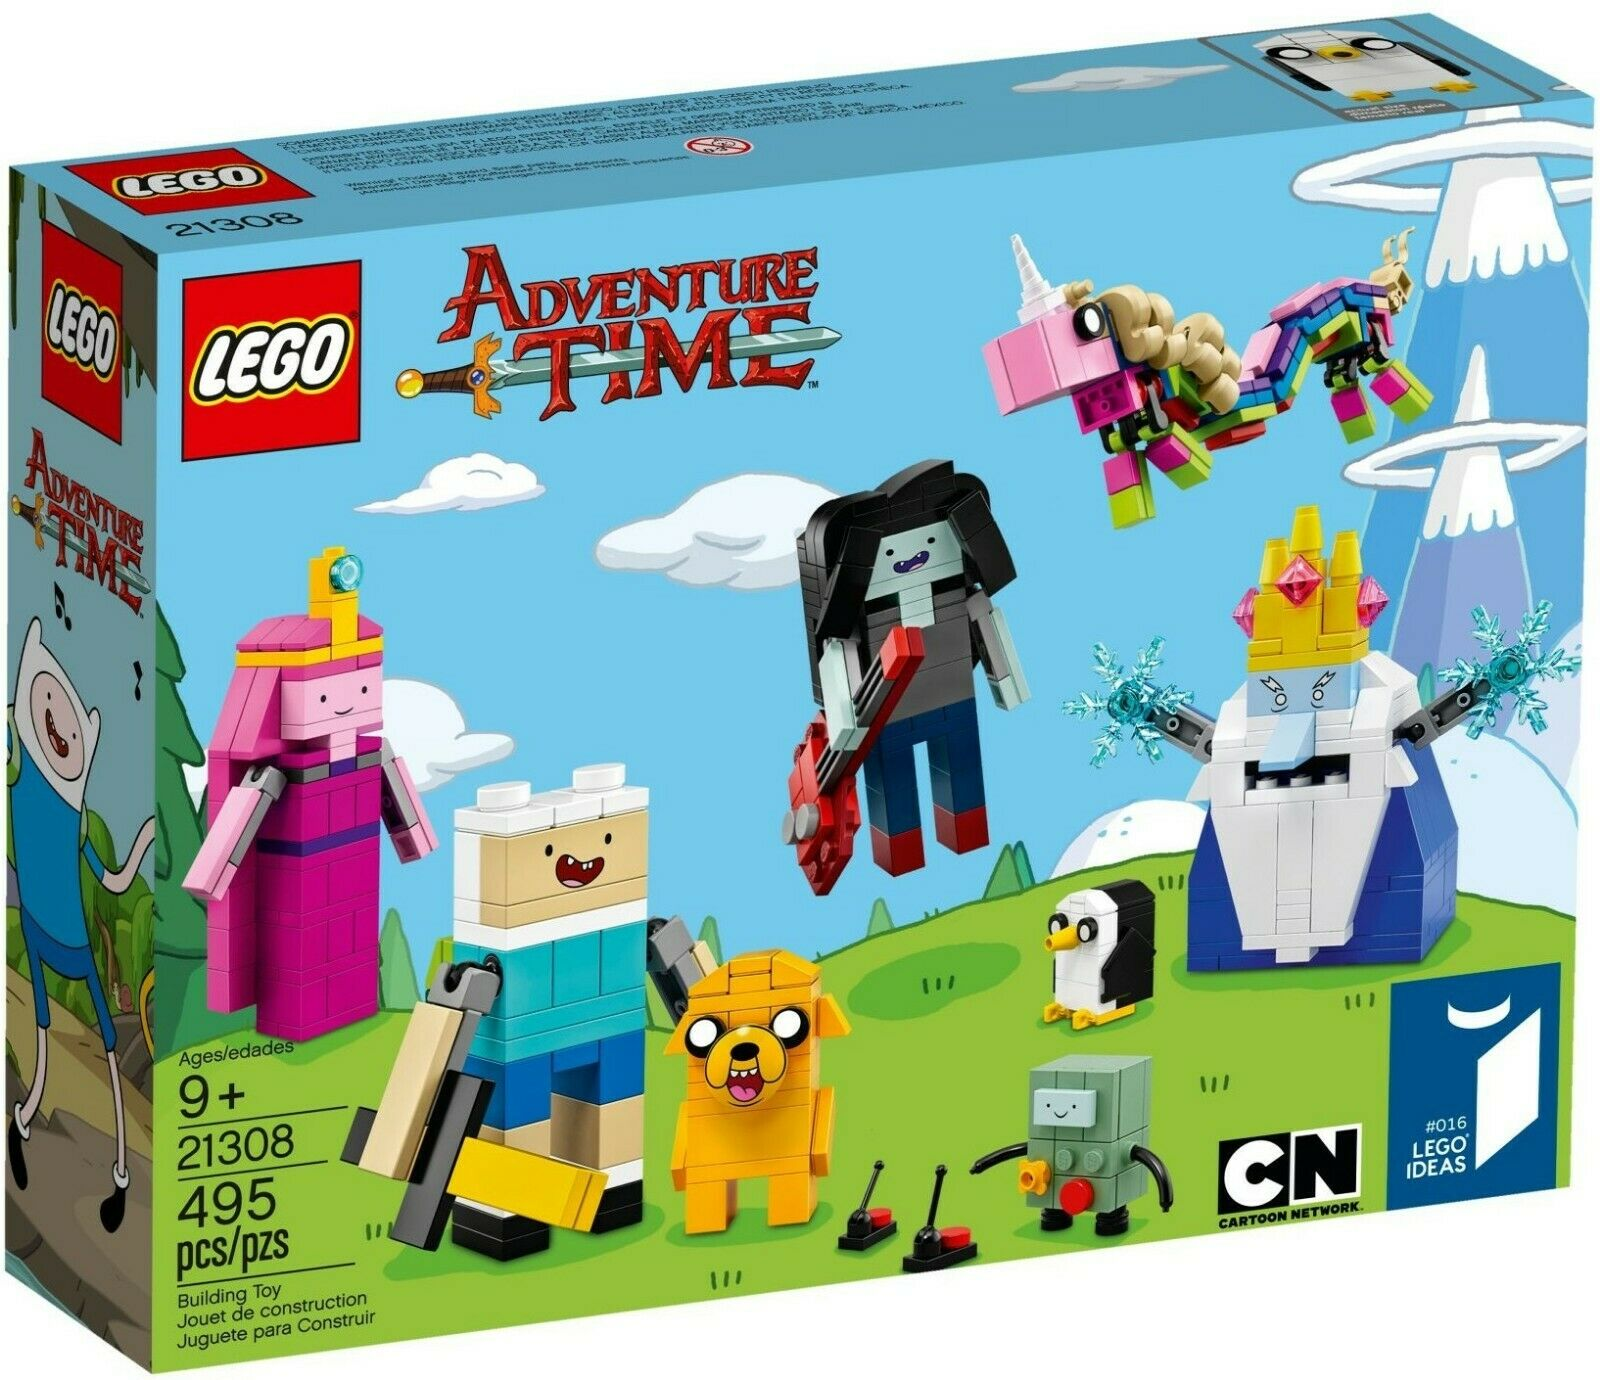 LEGO 21308 - Ideas - Adventure Time (Brick Build Figures Cartoon Network)